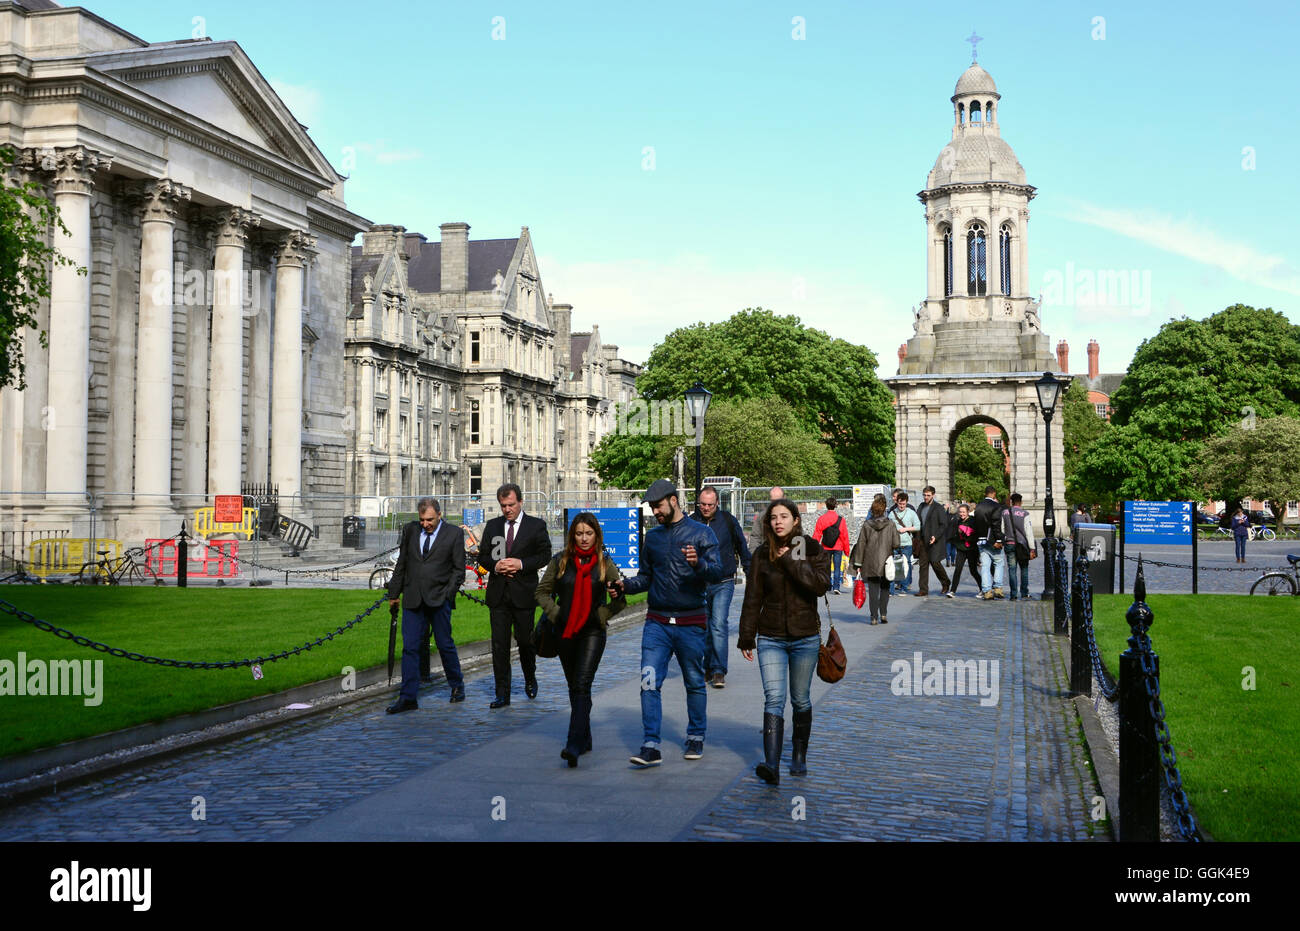 At Trinity College, Dublin, Ireland Stock Photo